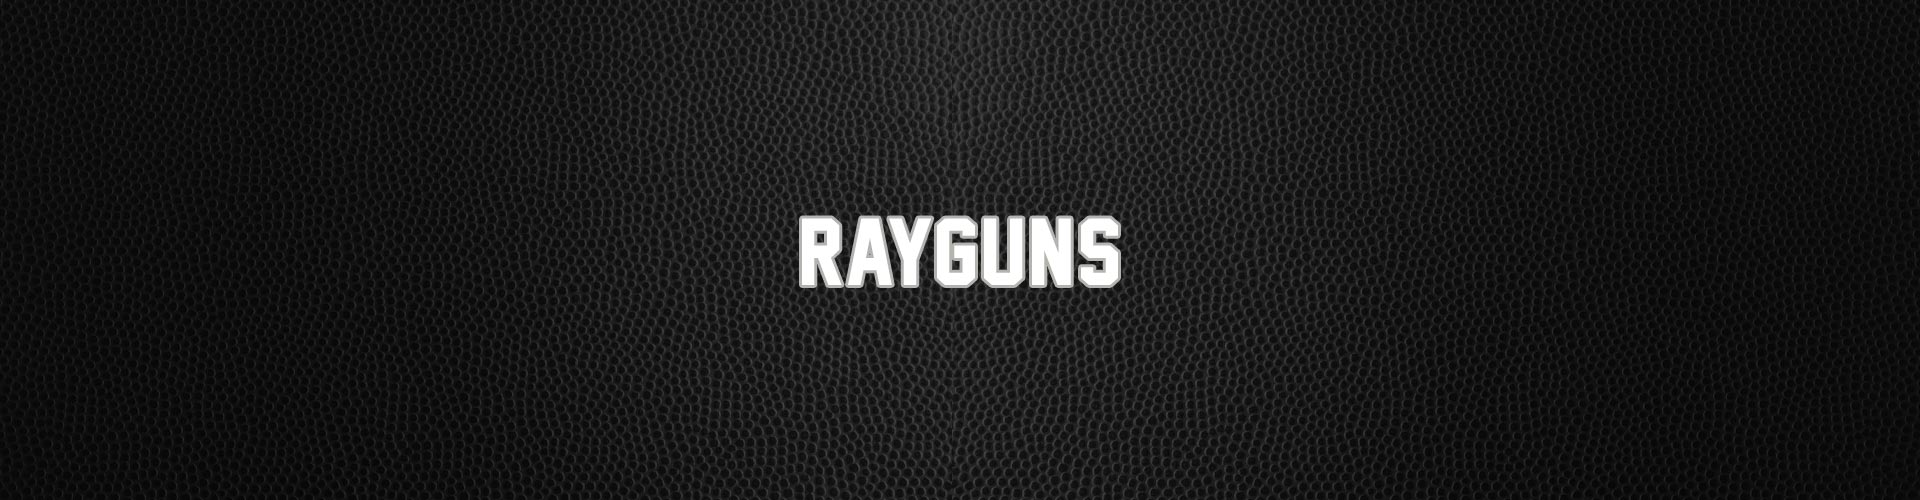 Roswell Rayguns